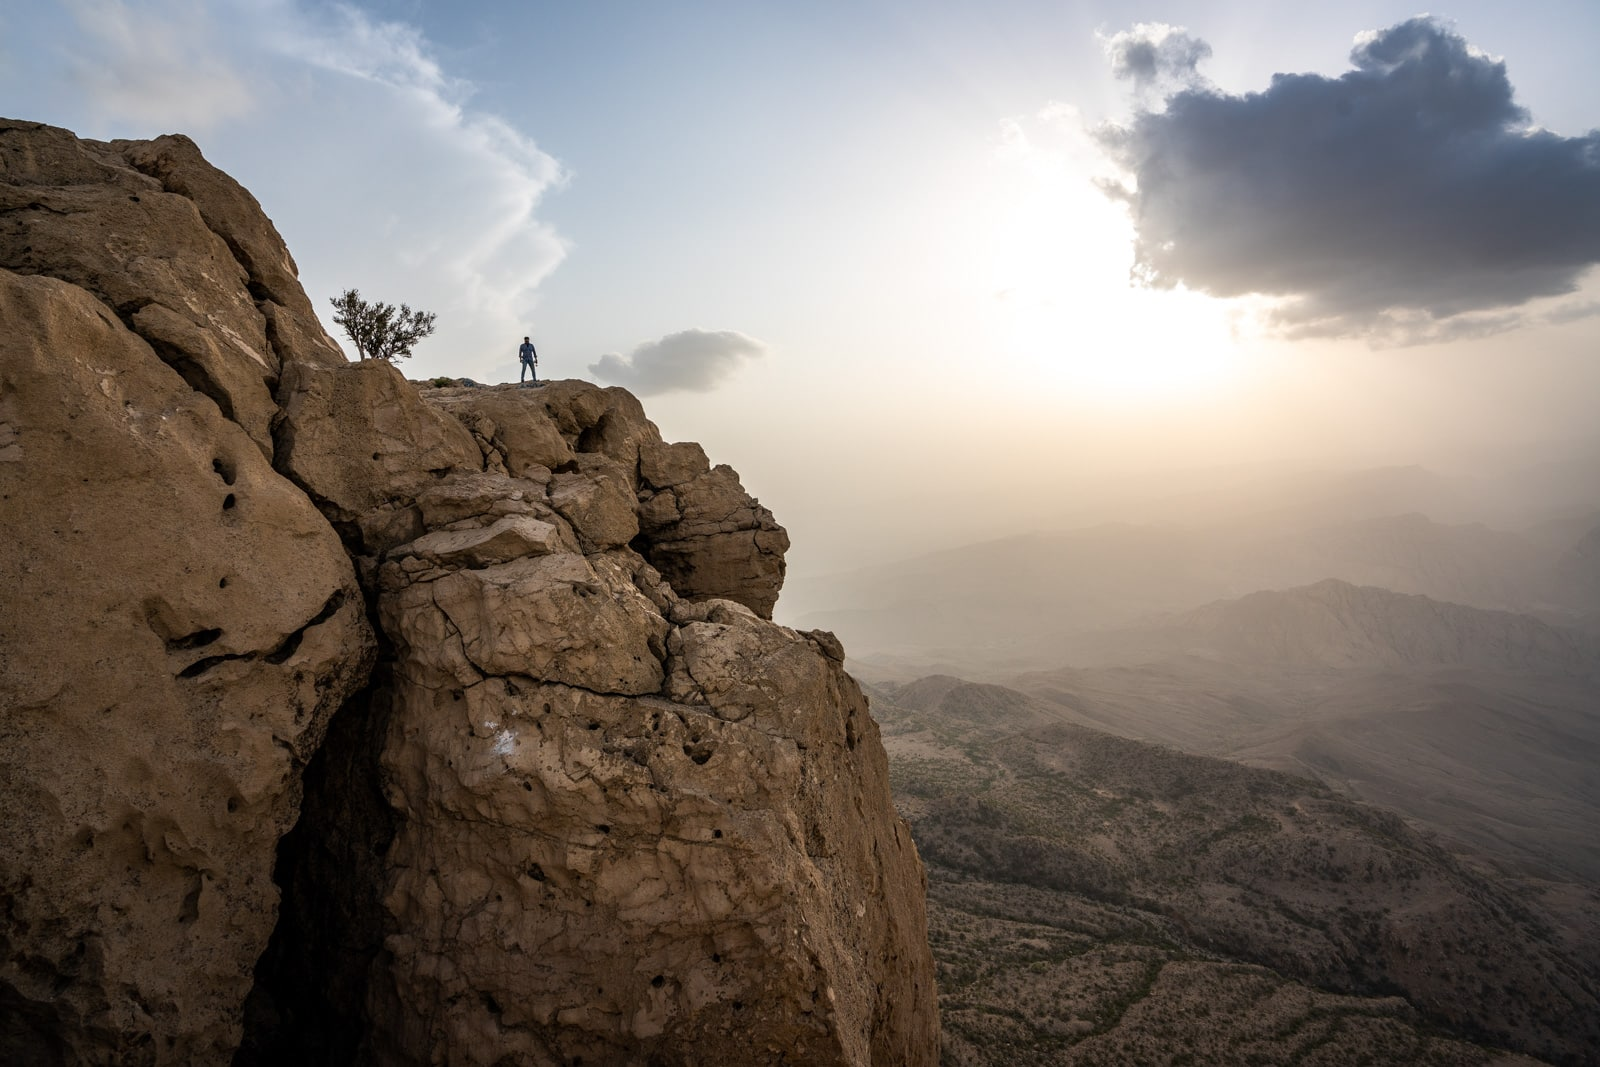 Sindh travel guide - Sunset at Gorakh Hill Station with boy standing on a cliff - Lost With Purpose travel blog